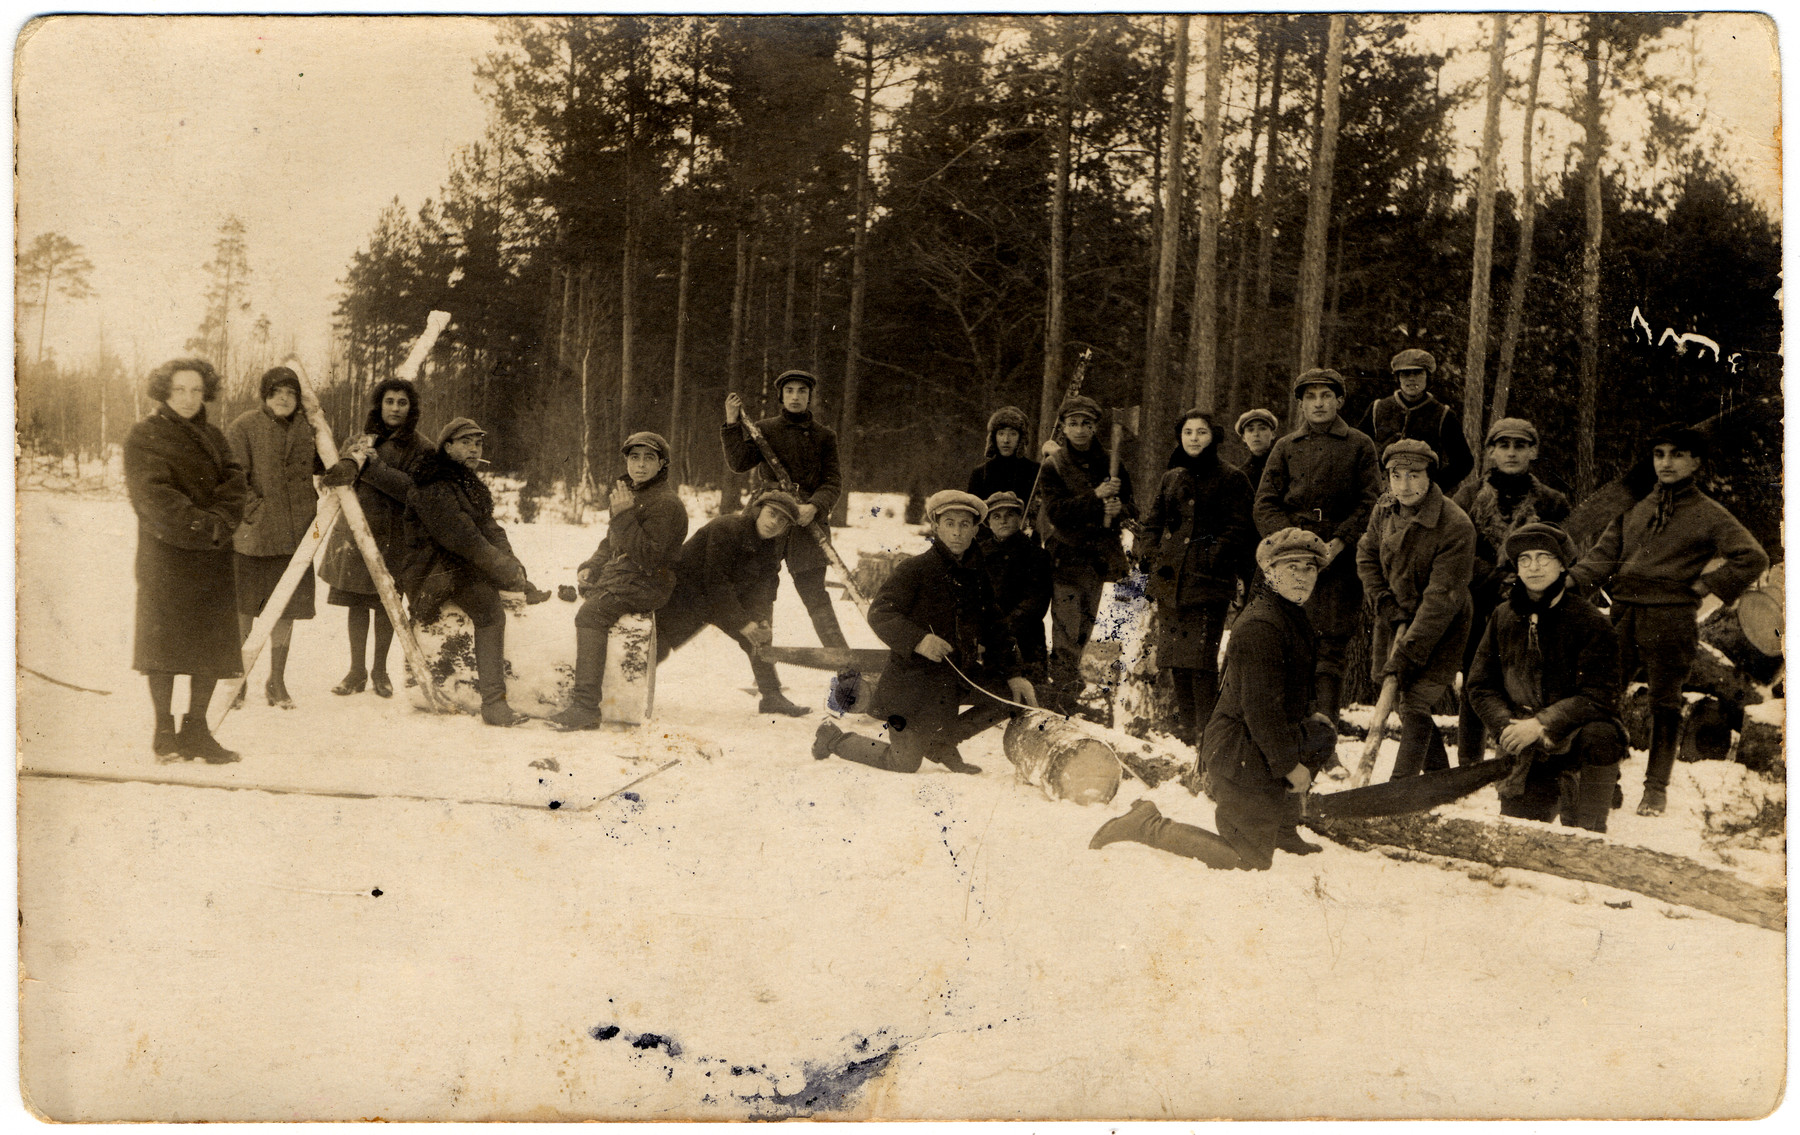 Zionist youth in Kibbutz Tel Chai, a hachshara in Michalin, chop wood in the snow.